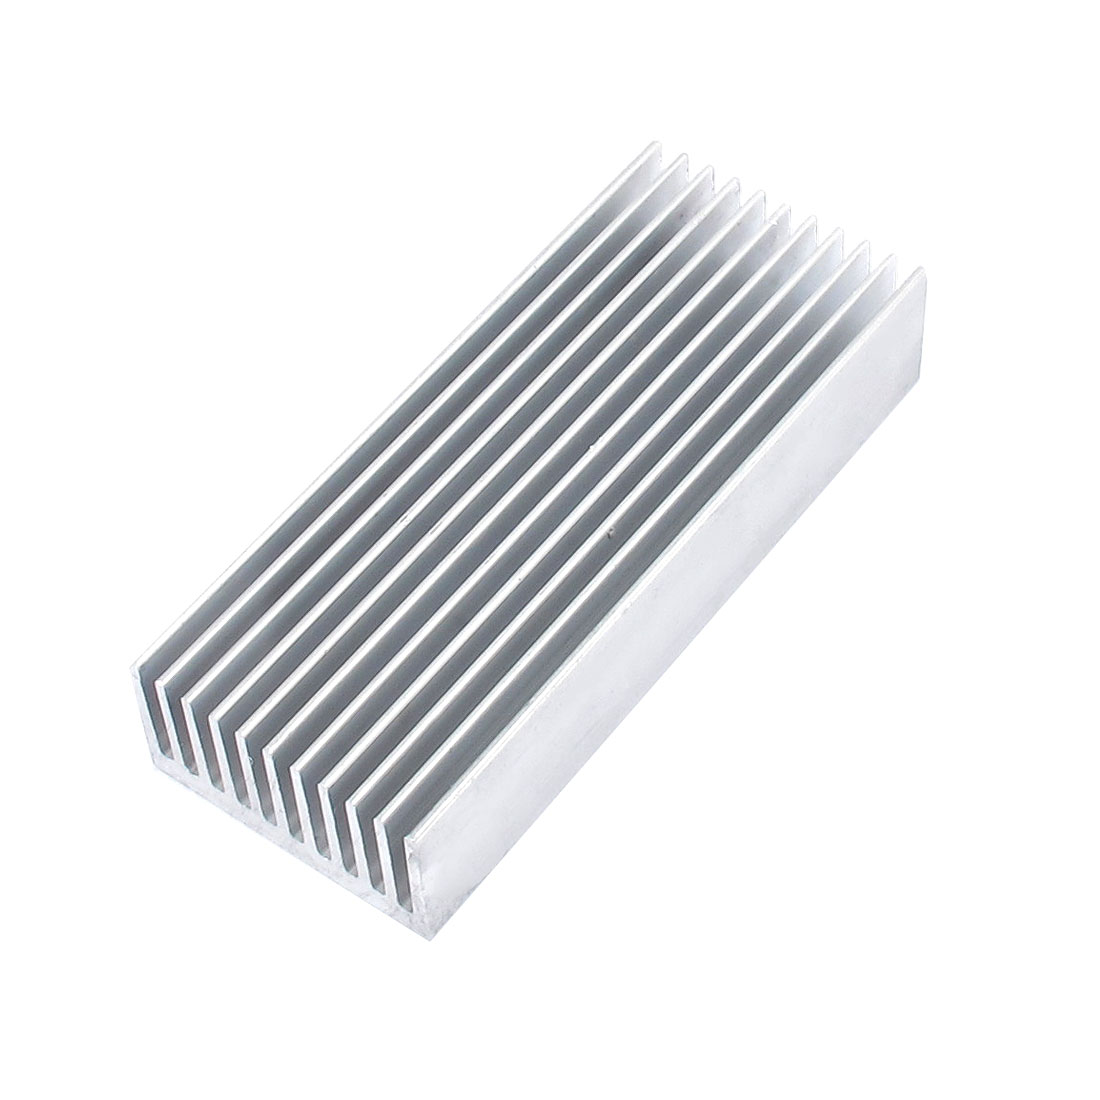 Silver Tone Aluminum Rectangle Heatsink Heat Sink Cooling Cooler Fin 98mmx40mmx20mm for Mosfet IC